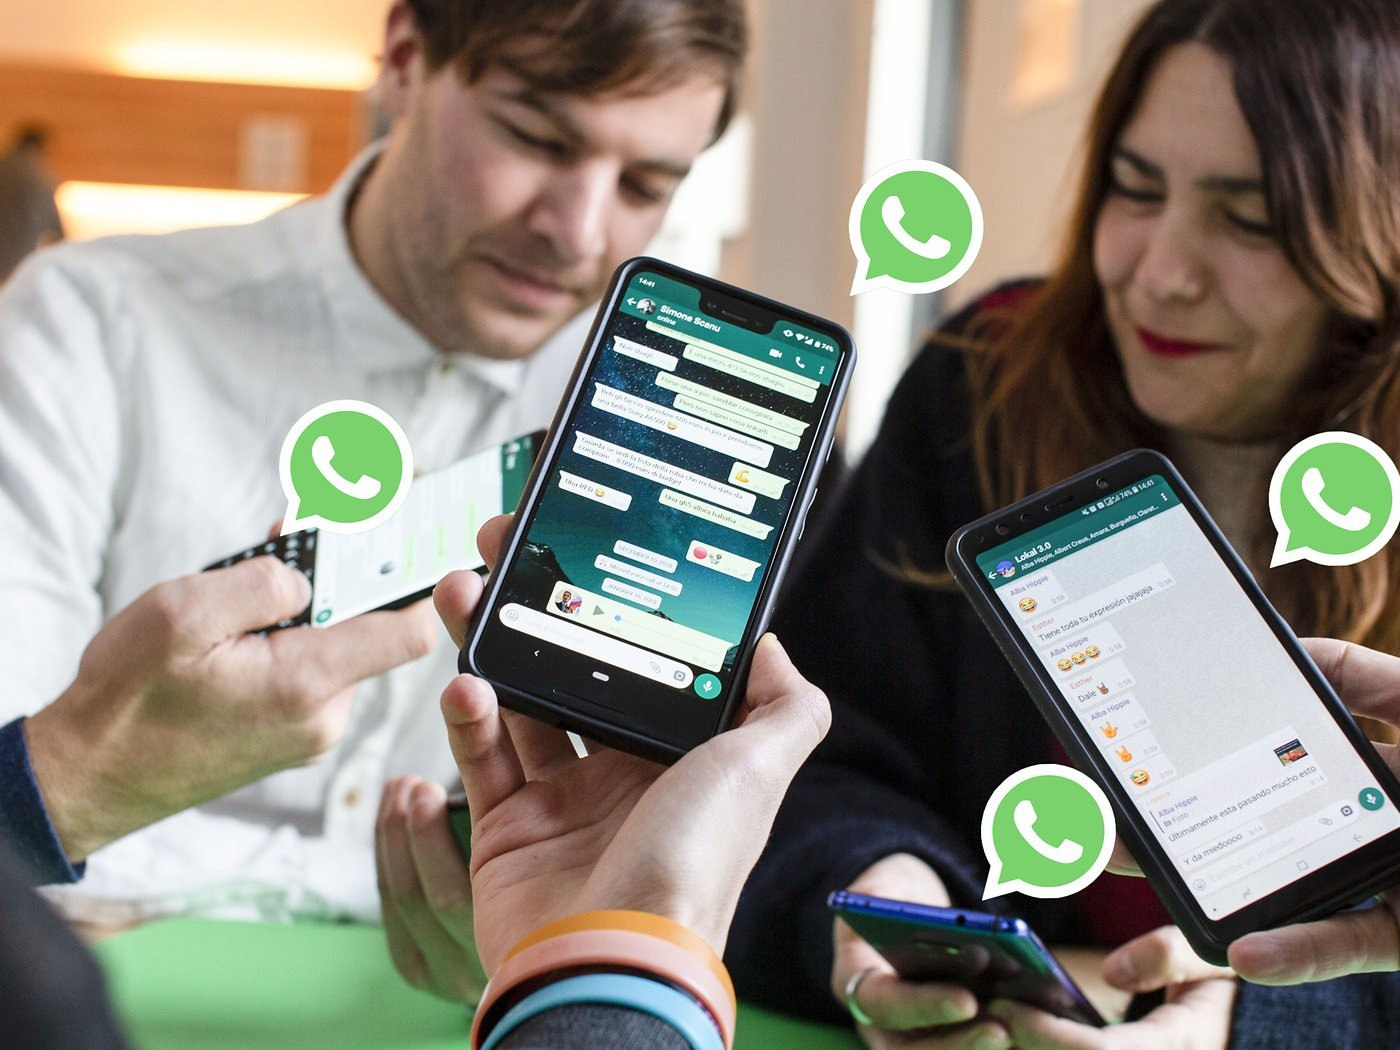 How to reply to a WhatsApp message without appearing online | AndroidPIT